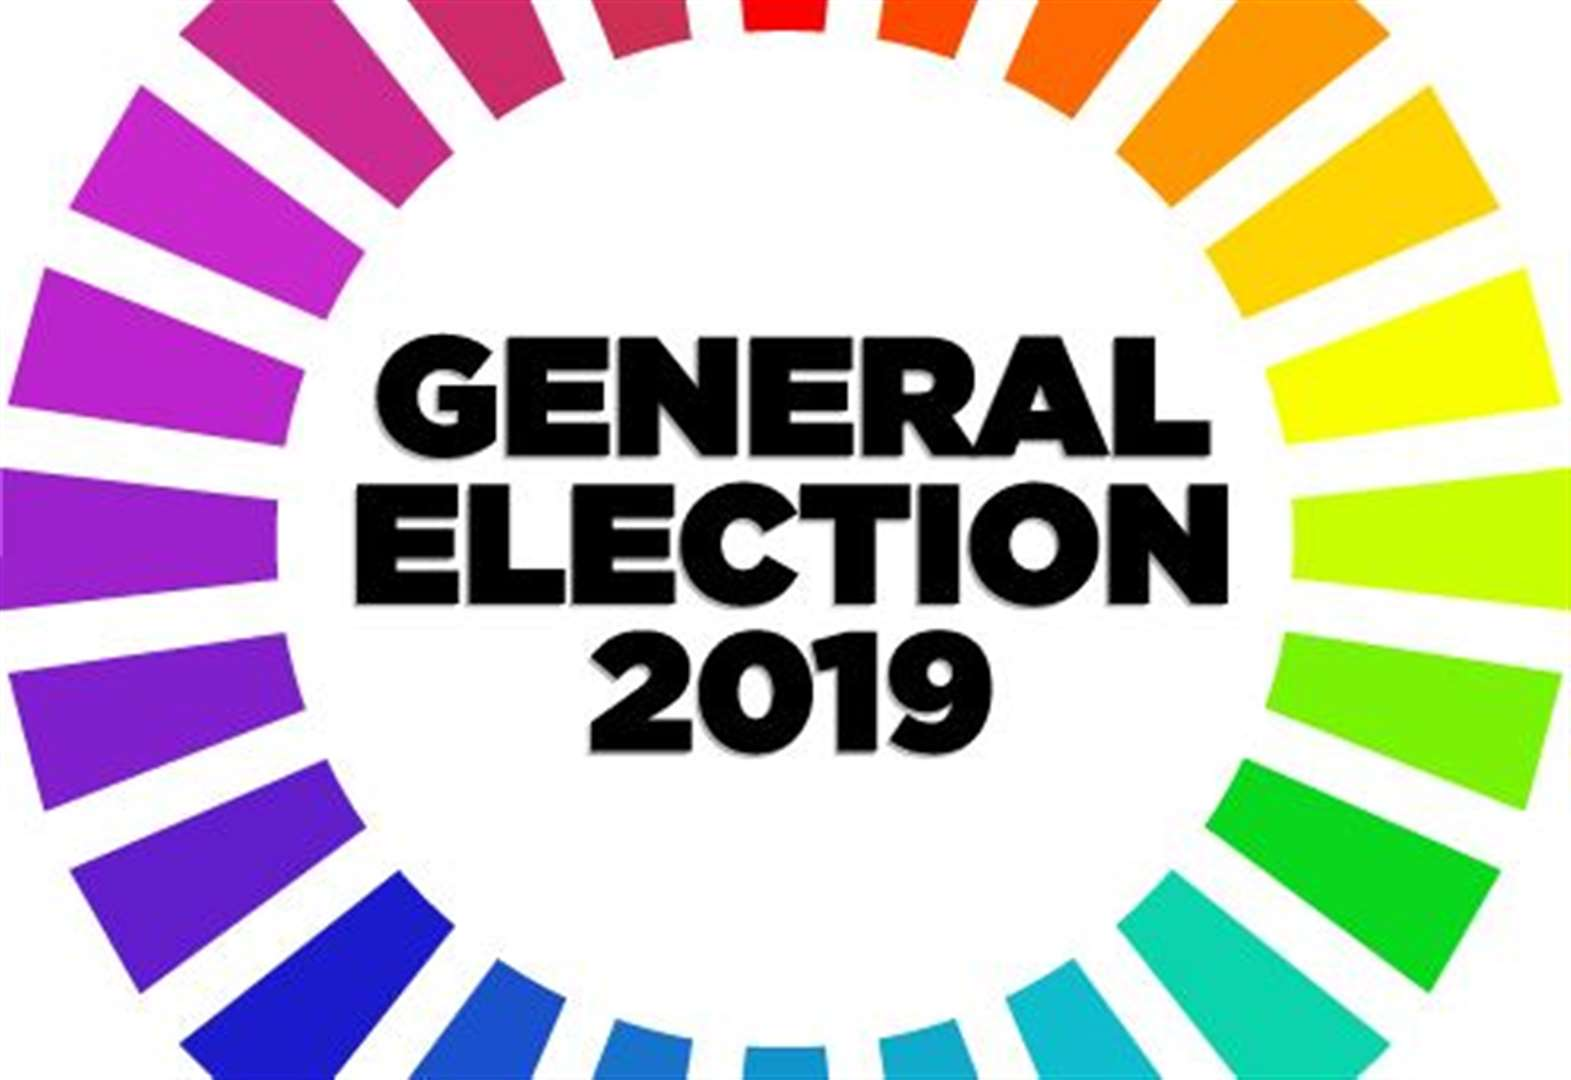 General Election 2019: All the deadlines for voters and candidates